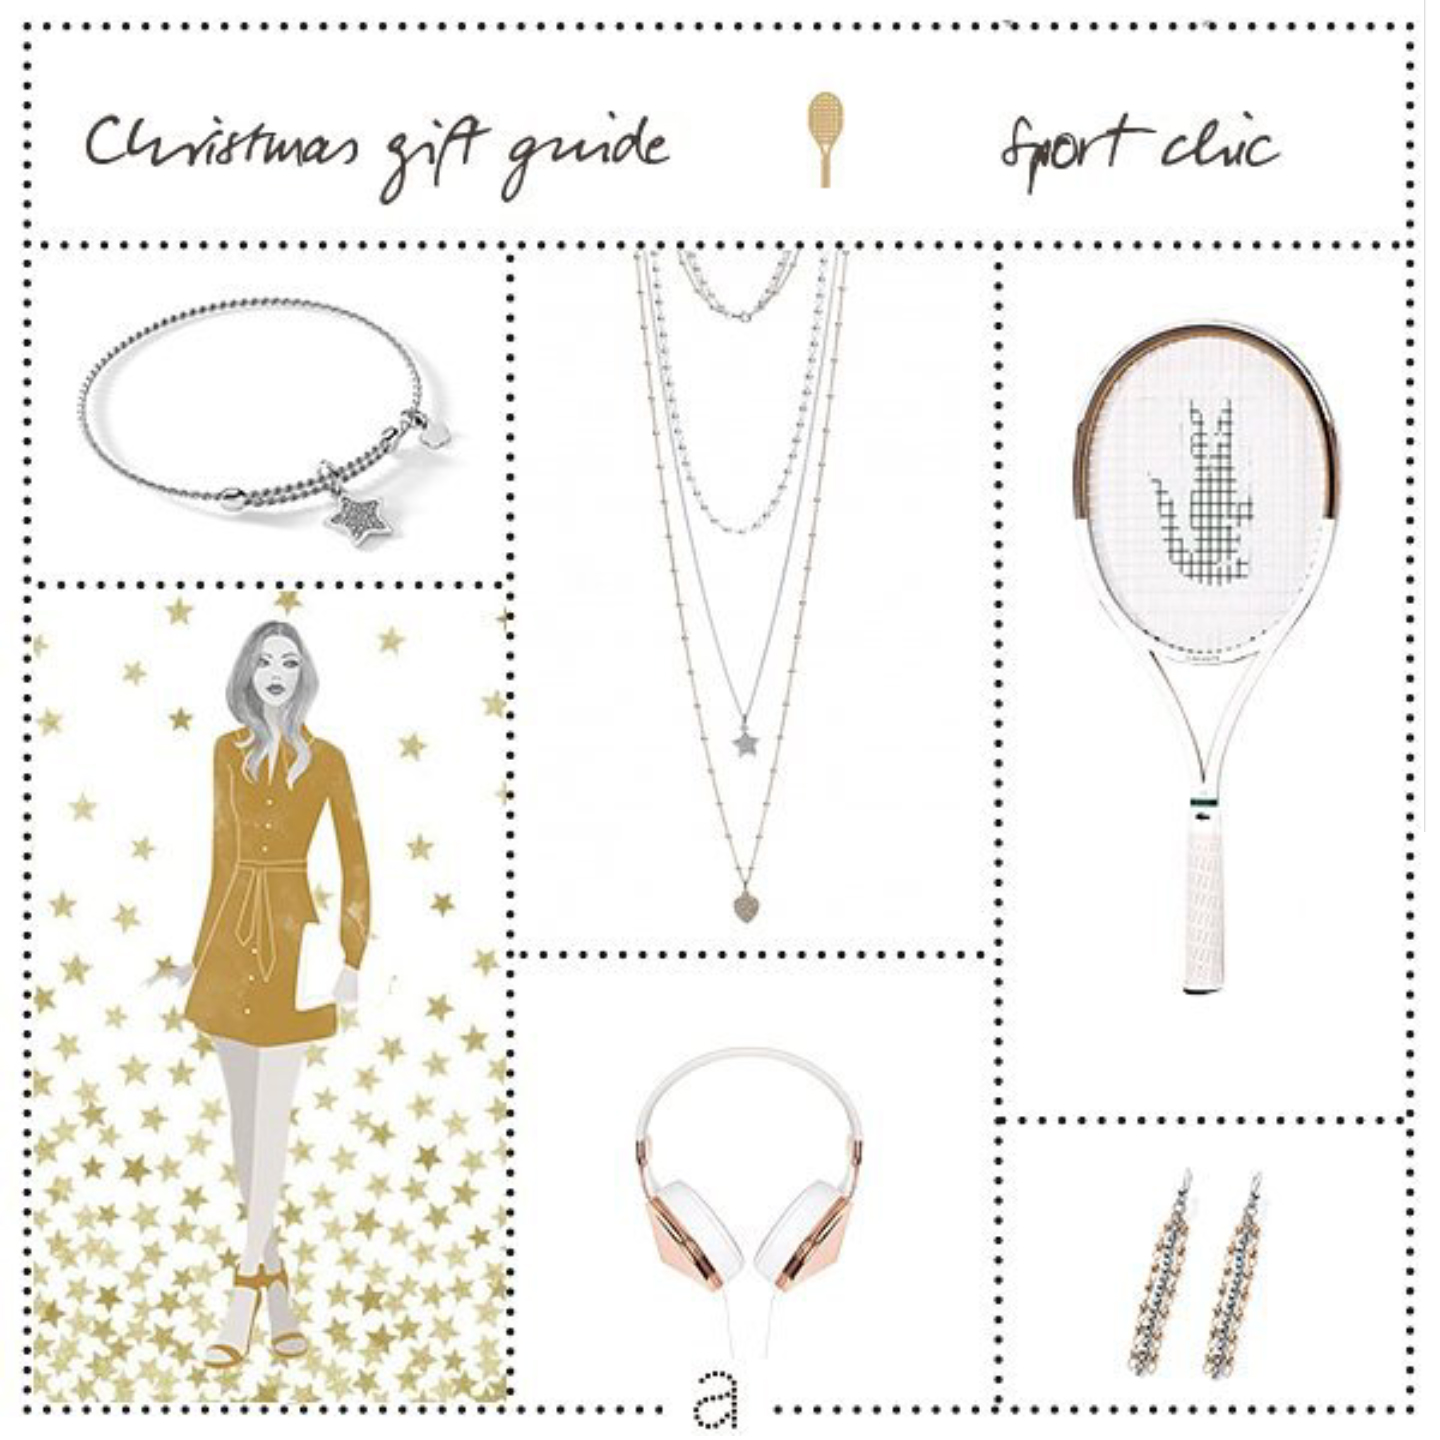 Ambrosia Christmas Gift Guide Sport Chic